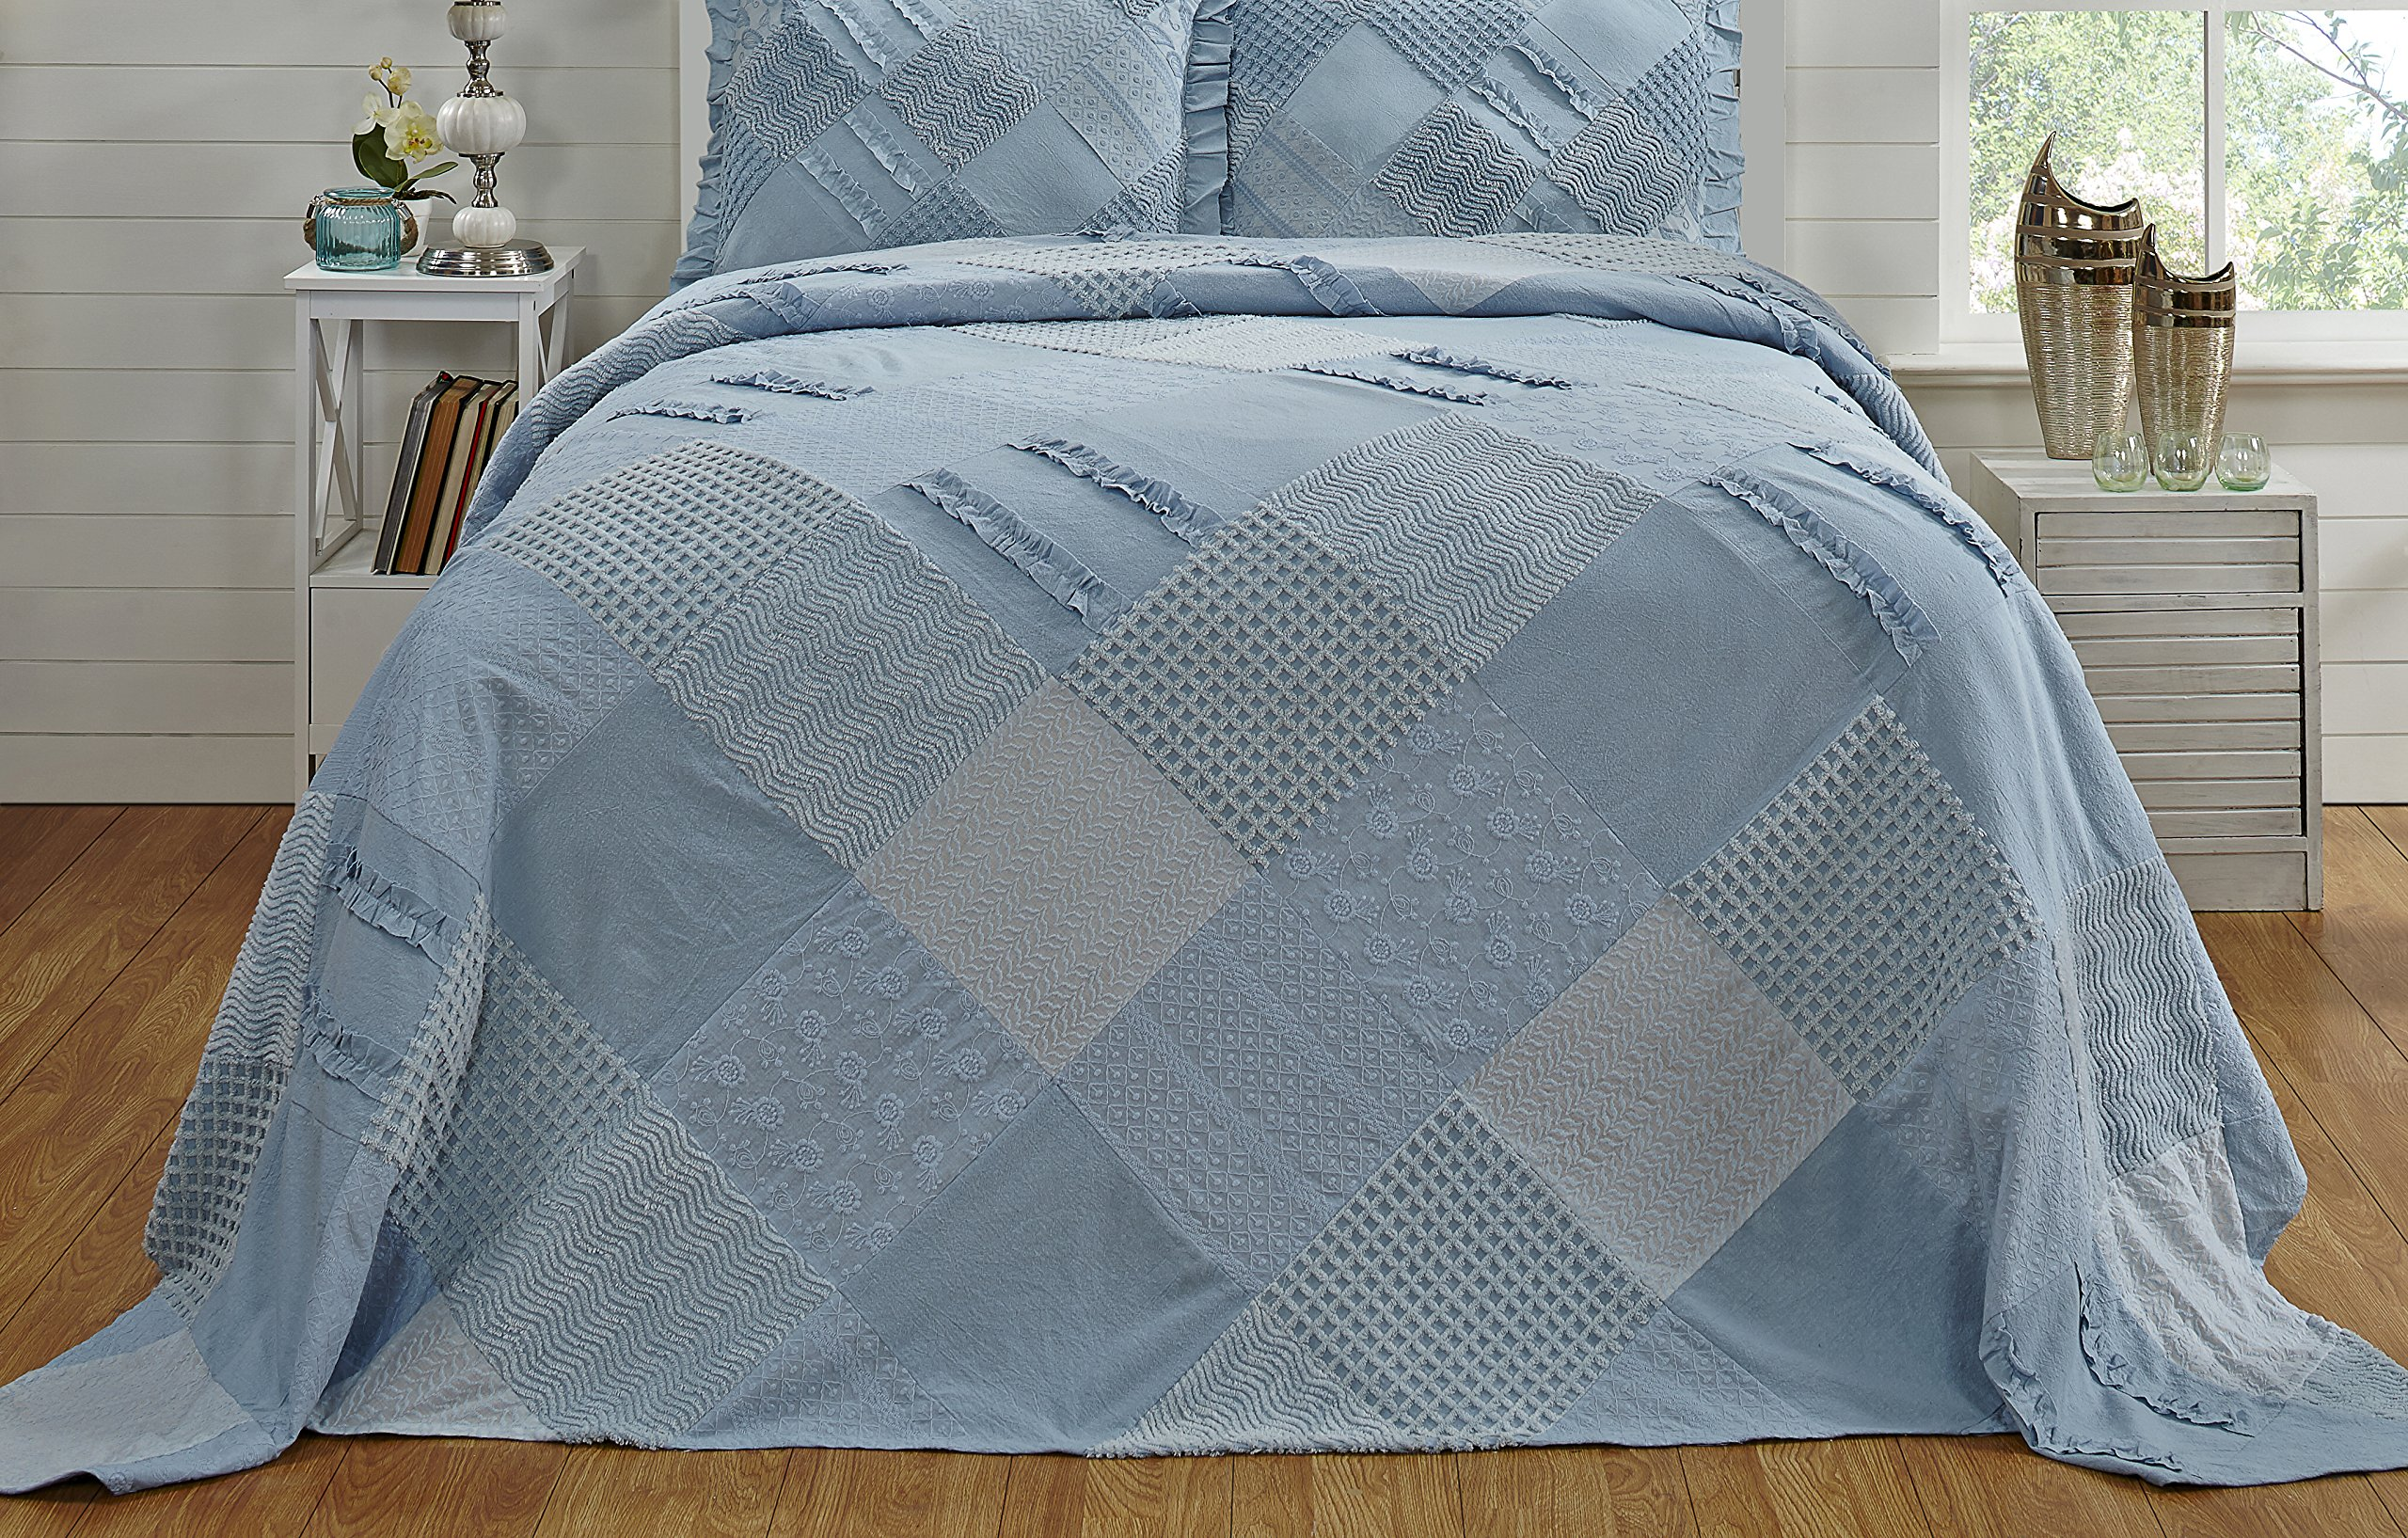 Better Trends / Pan Overseas 96 X 110 Inch Ruffled Chenille Patchwork Bedspread, Full, Blue